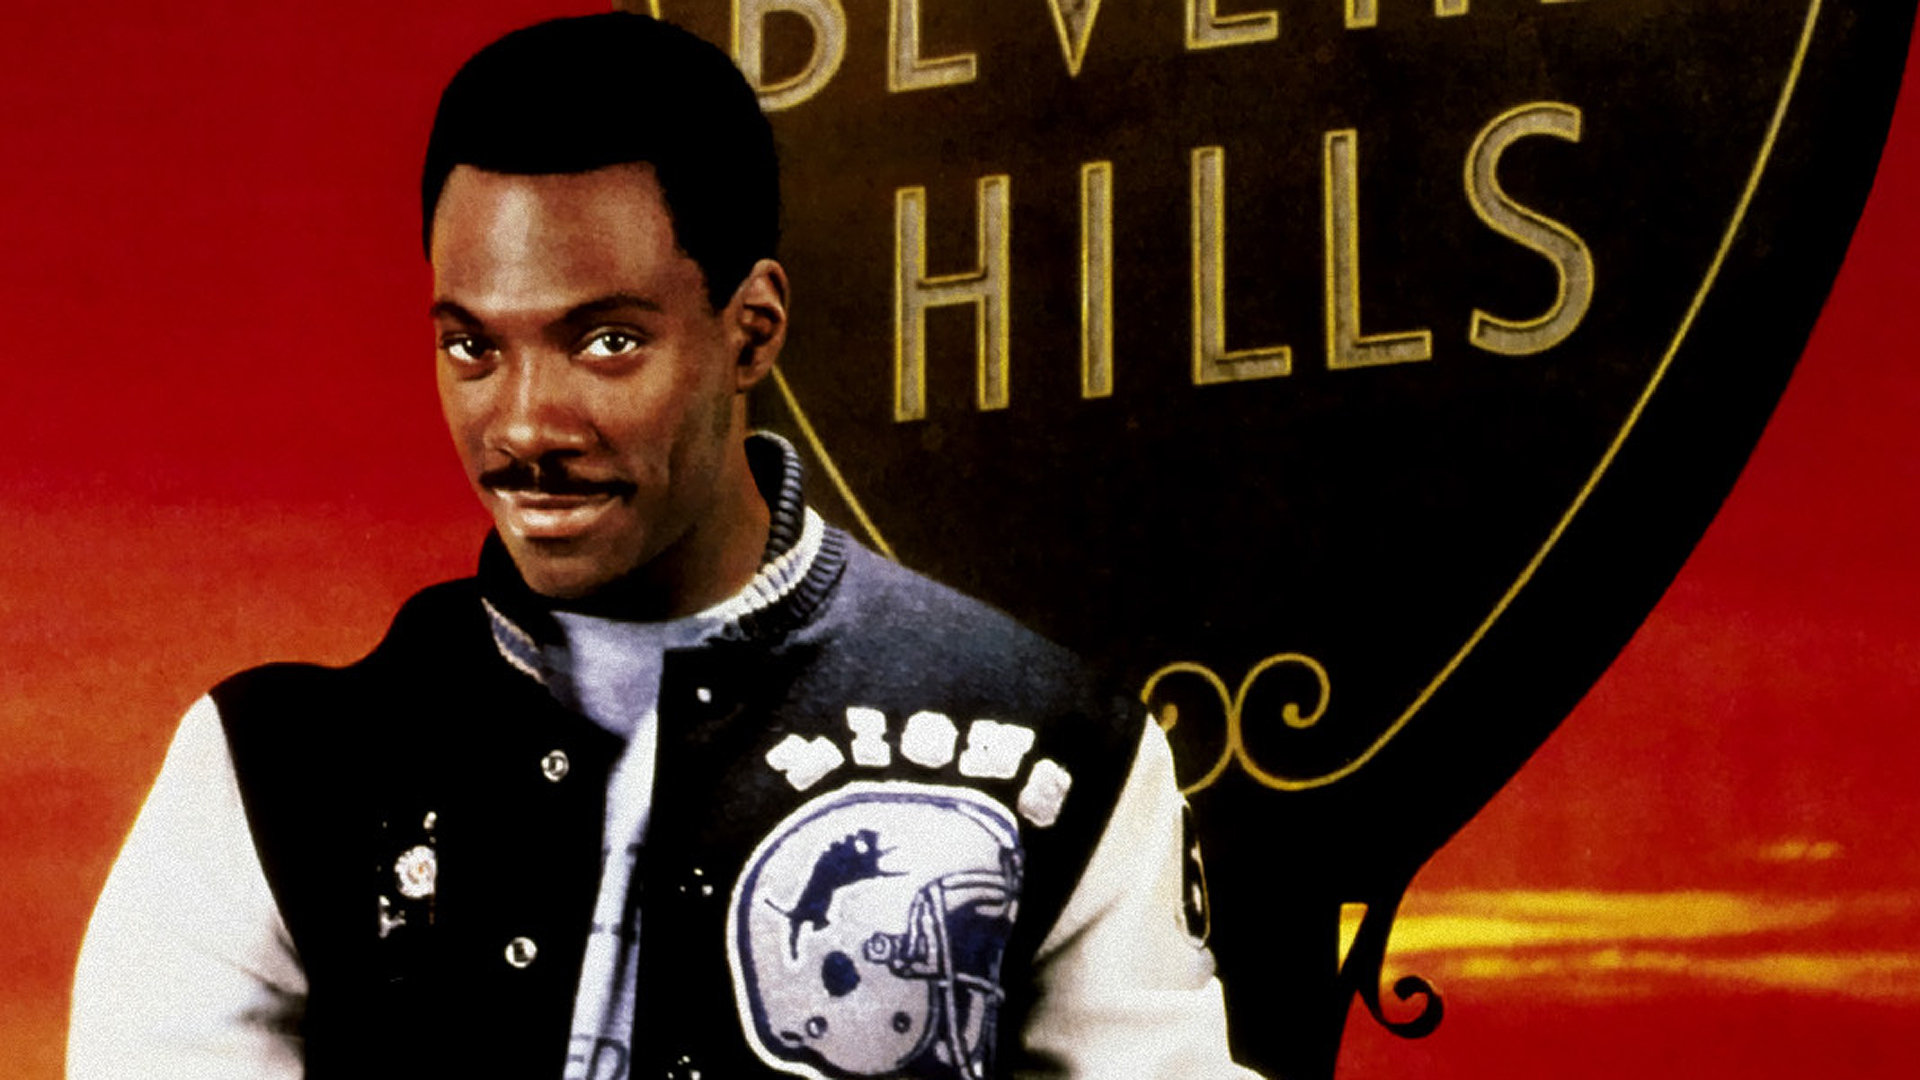 Beverly Hills Cop Theme Song | Movie Theme Songs & TV ...  Beverly Hills C...